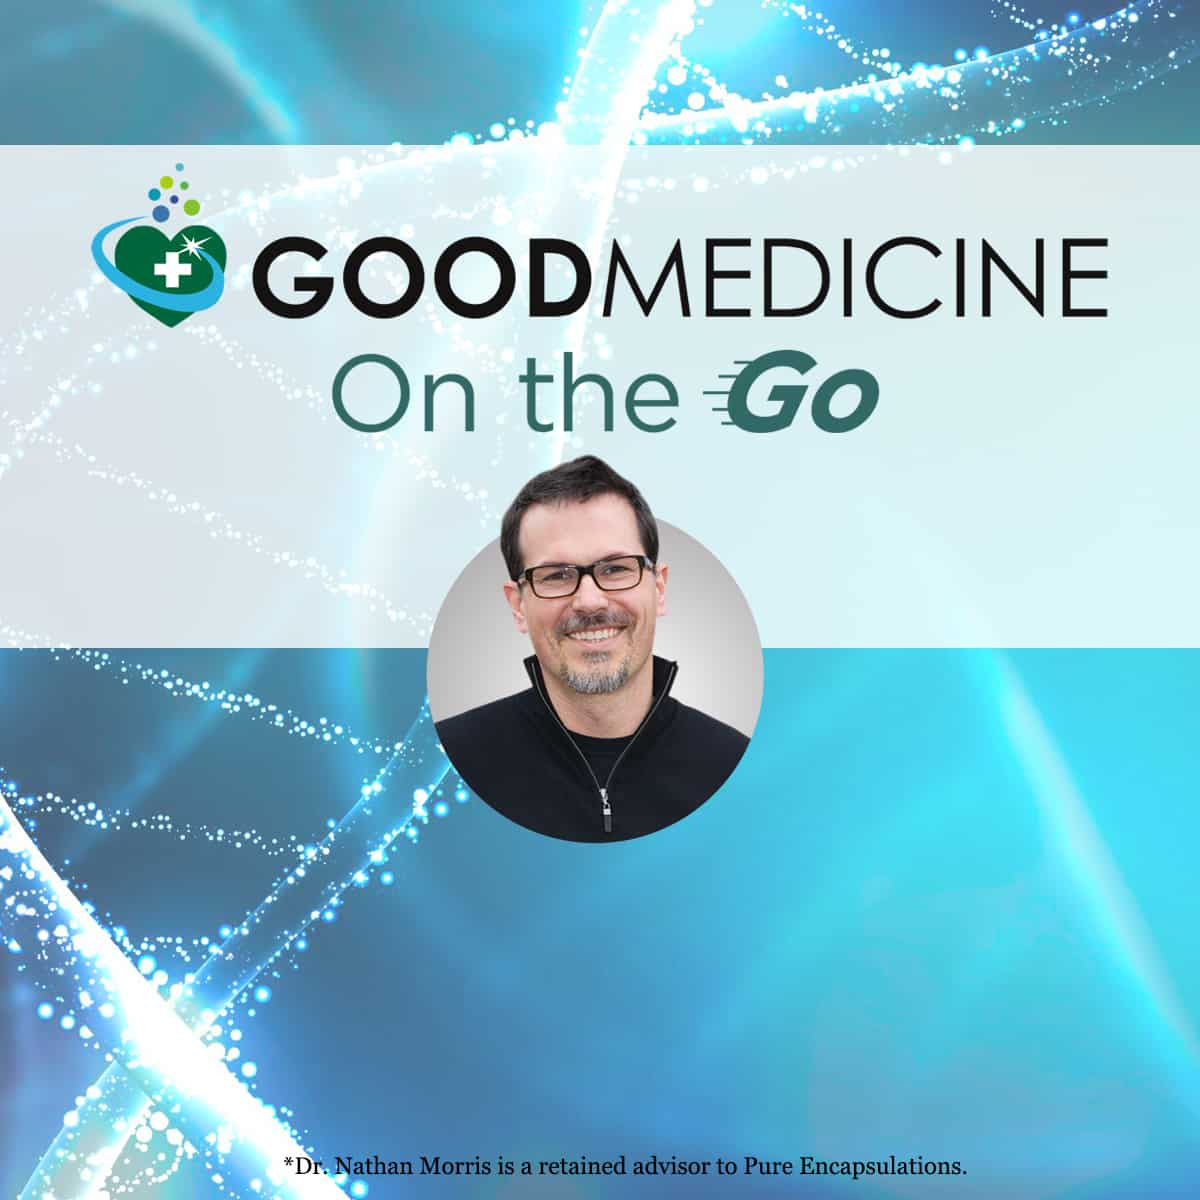 August 18, 2021 Nutrigenomics case study events with Dr. Nathan Morris